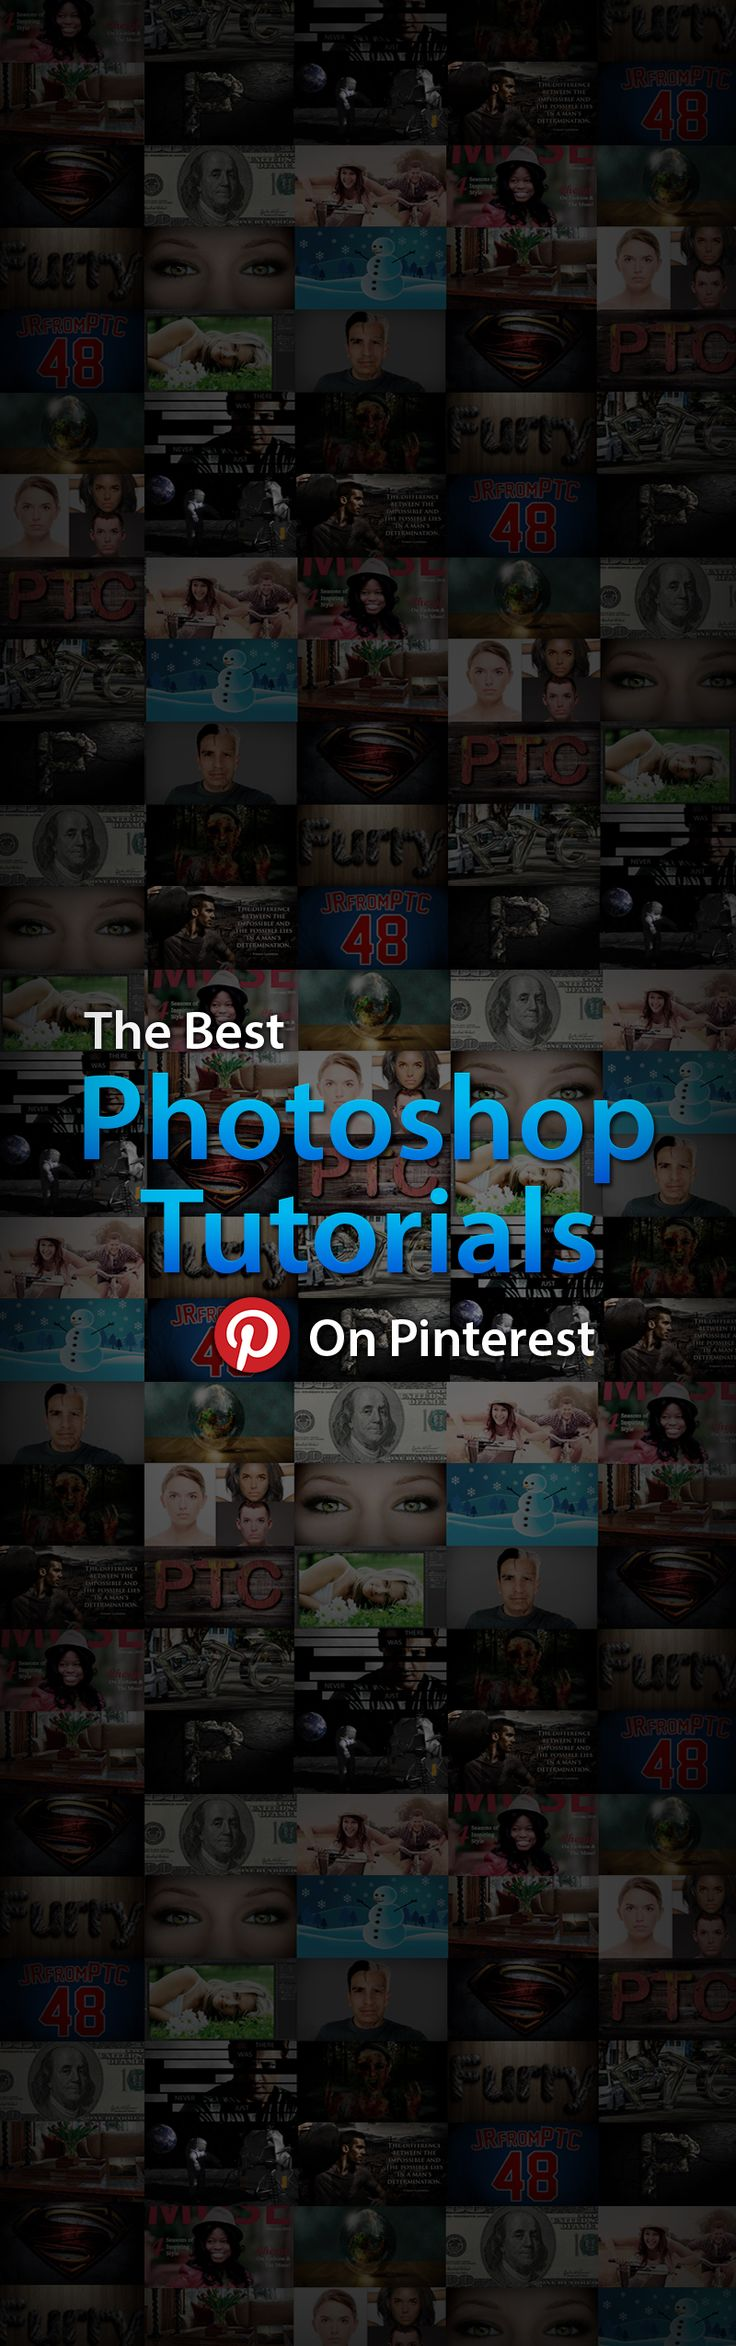 The Best Photoshop Video Tutorials on Pinterest! Check It Out!